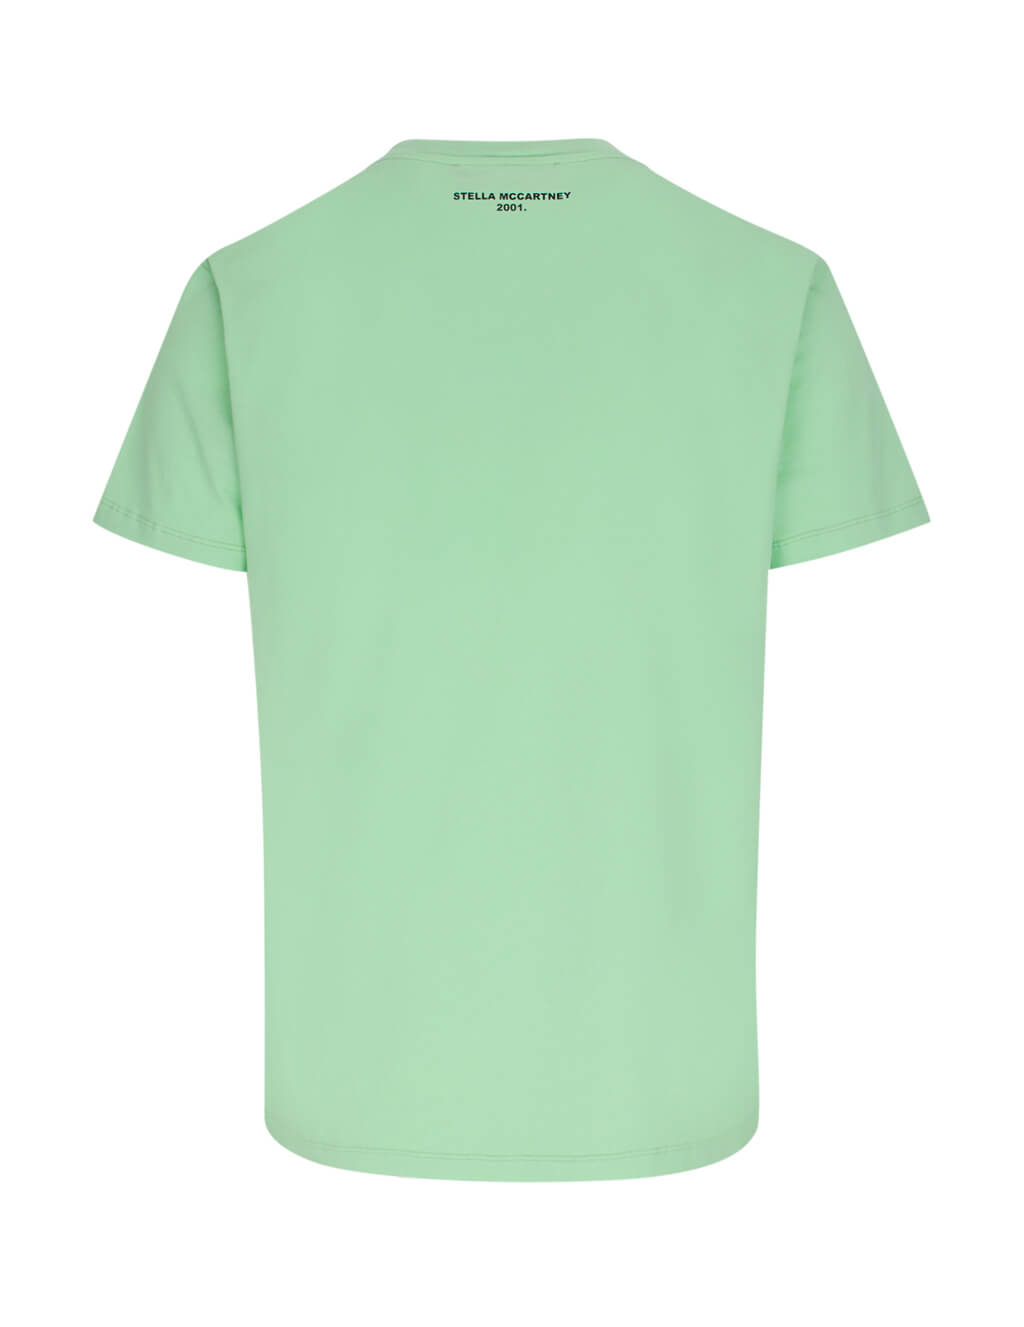 Stella McCartney Men's Handle With Care Print T-Shirt in Light Mint Green 572483SMP613900